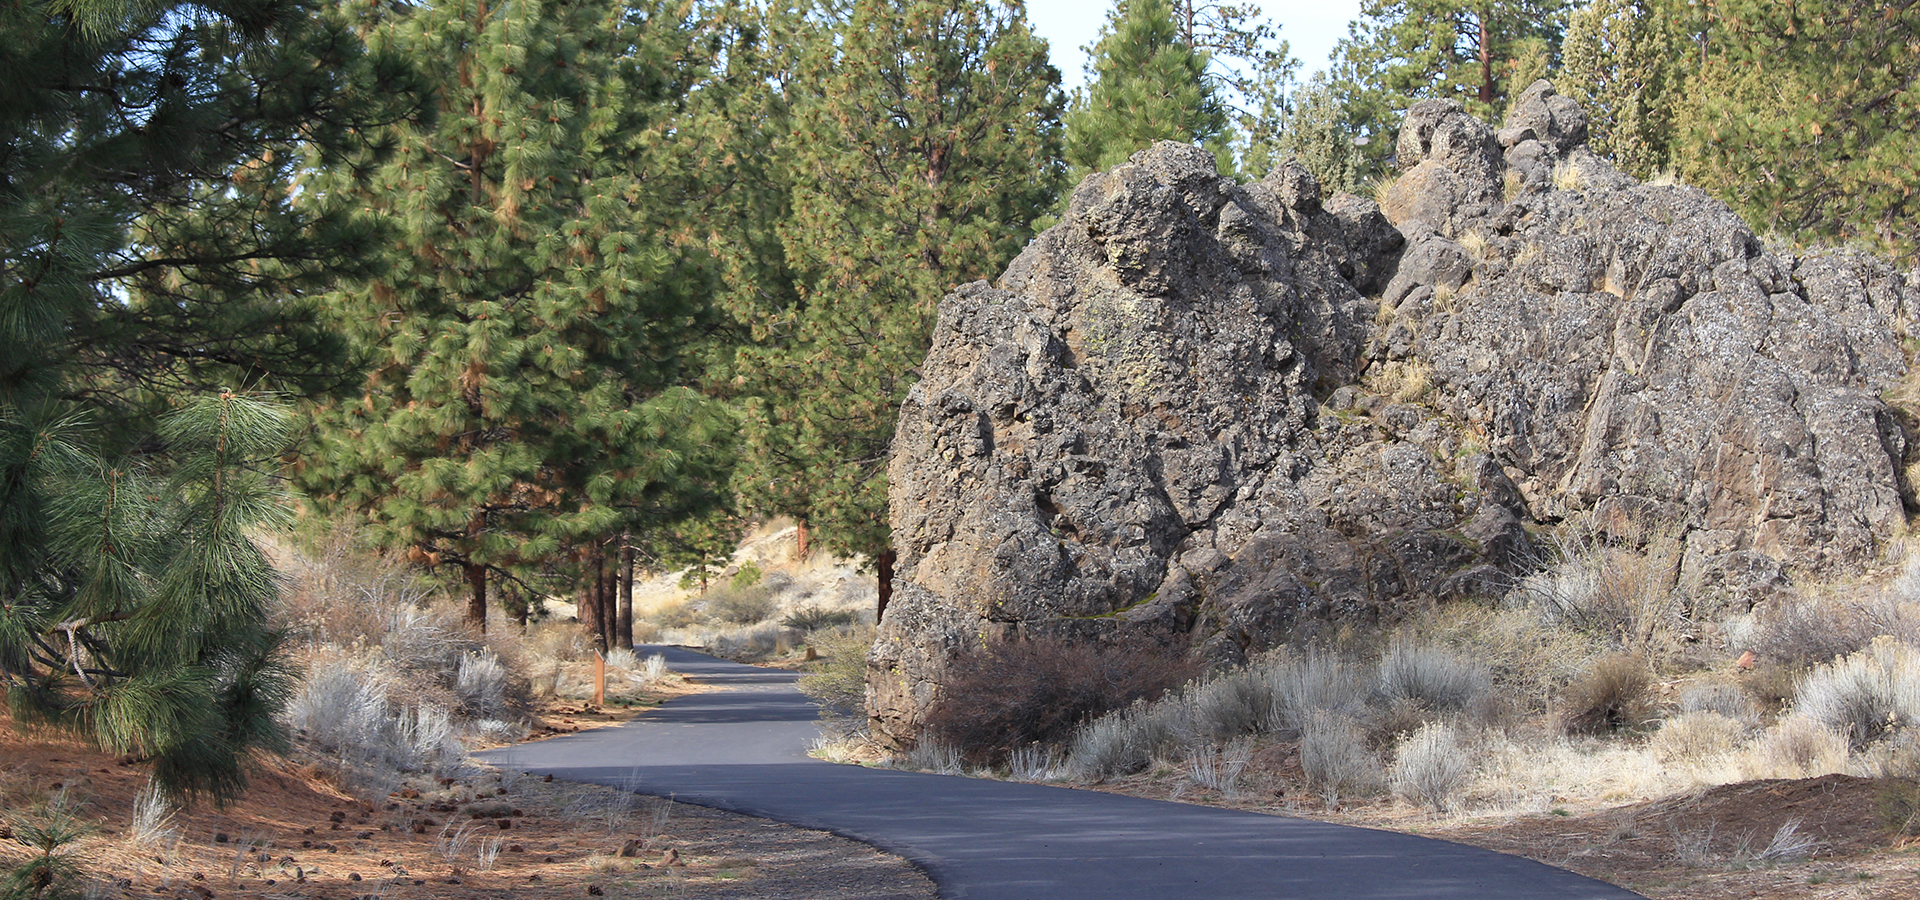 Image of the West Bend Trail in Bend, Oregon.